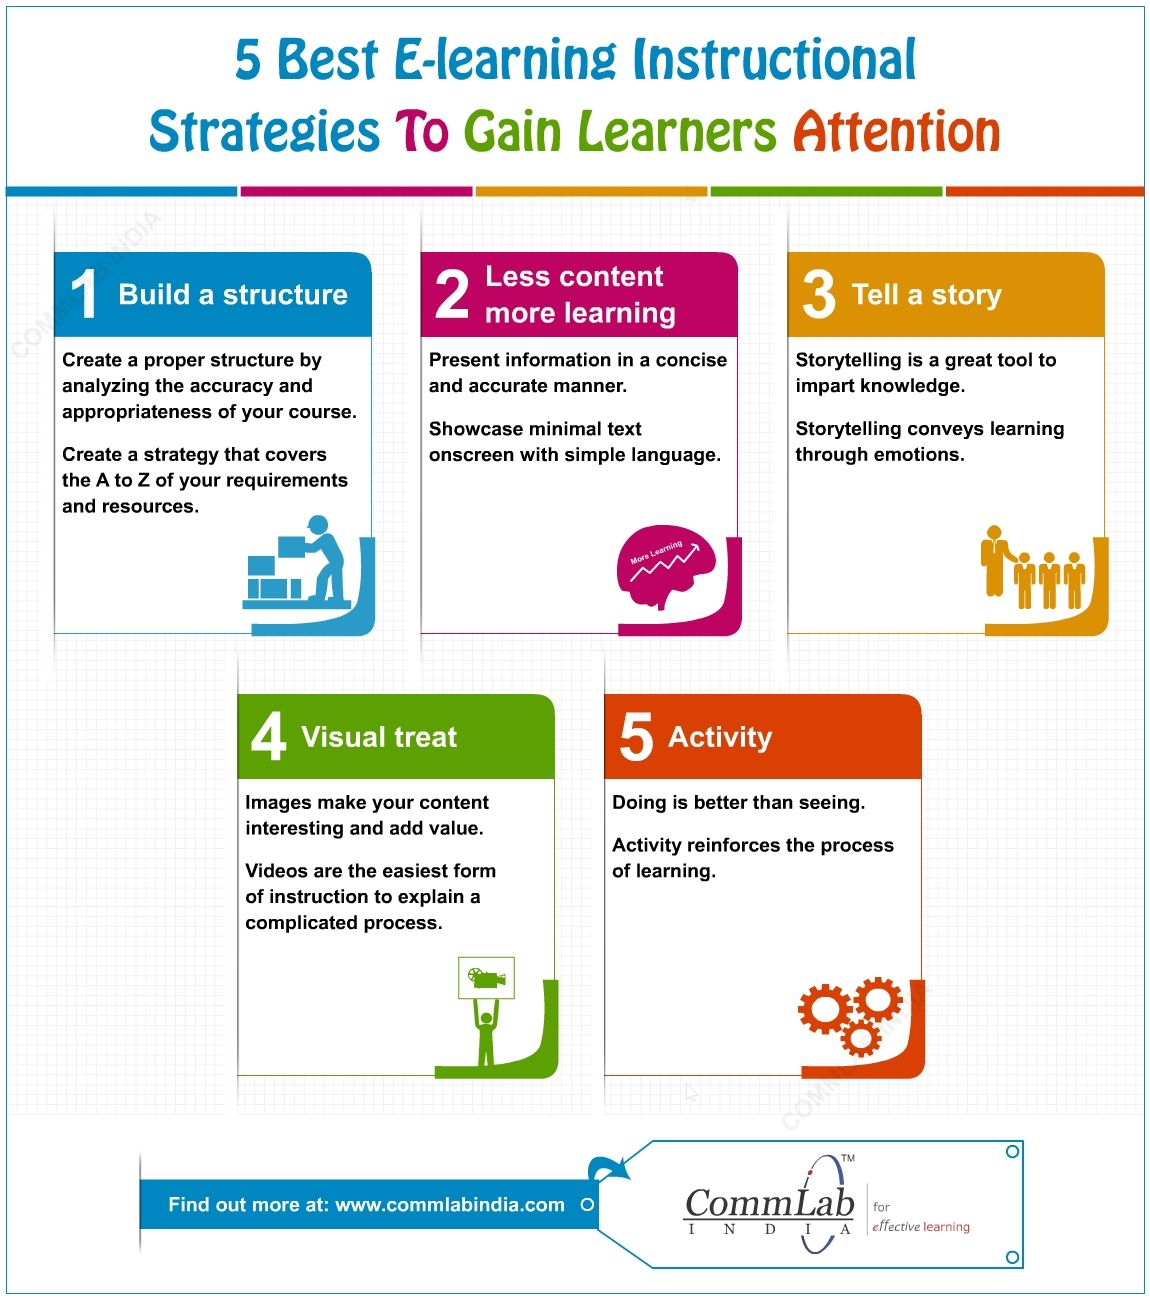 5 Proven Instructional Strategies To Gain Learners Attention An Infographic